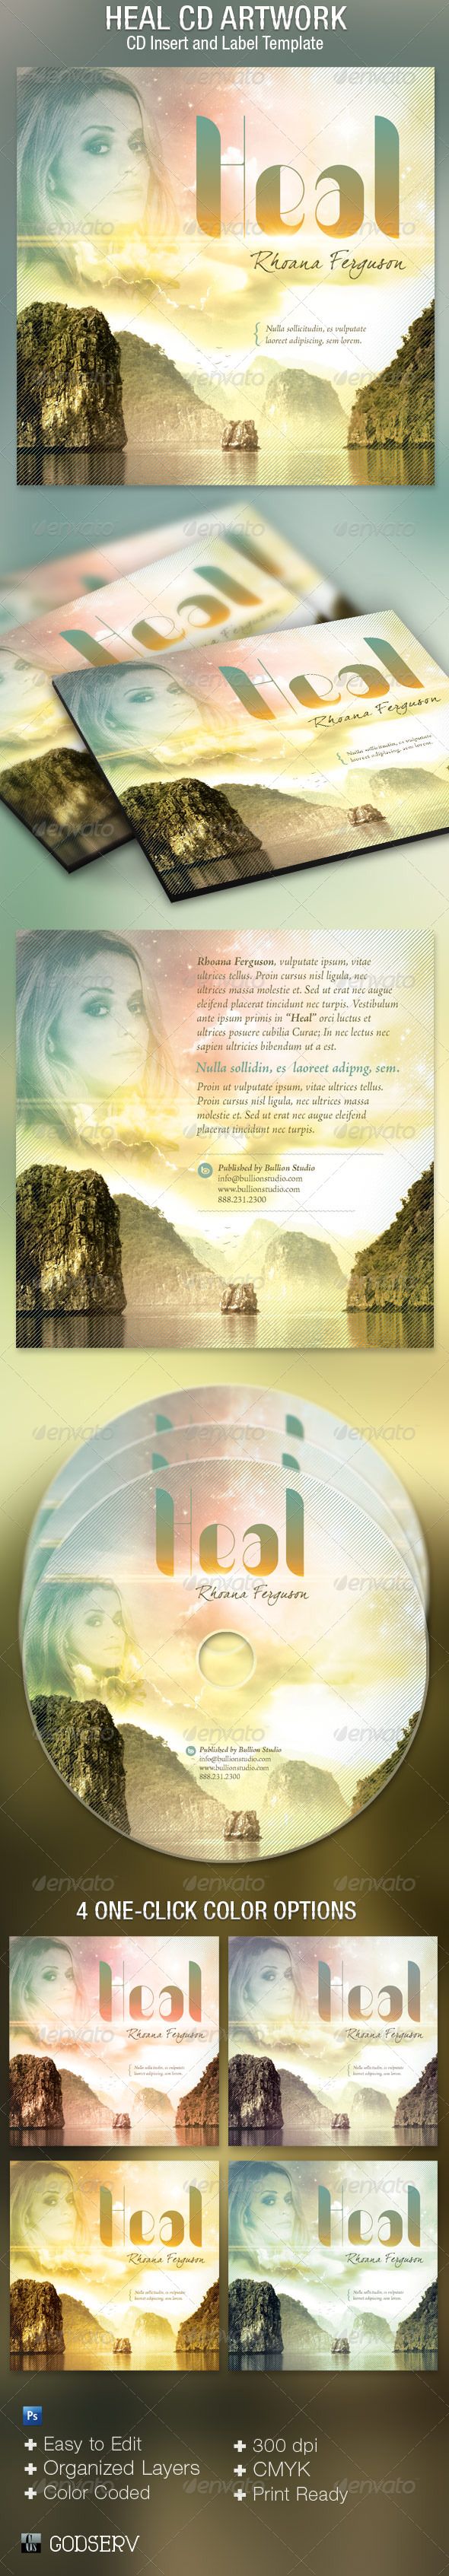 GraphicRiver Heal CD Artwork Template 5034454